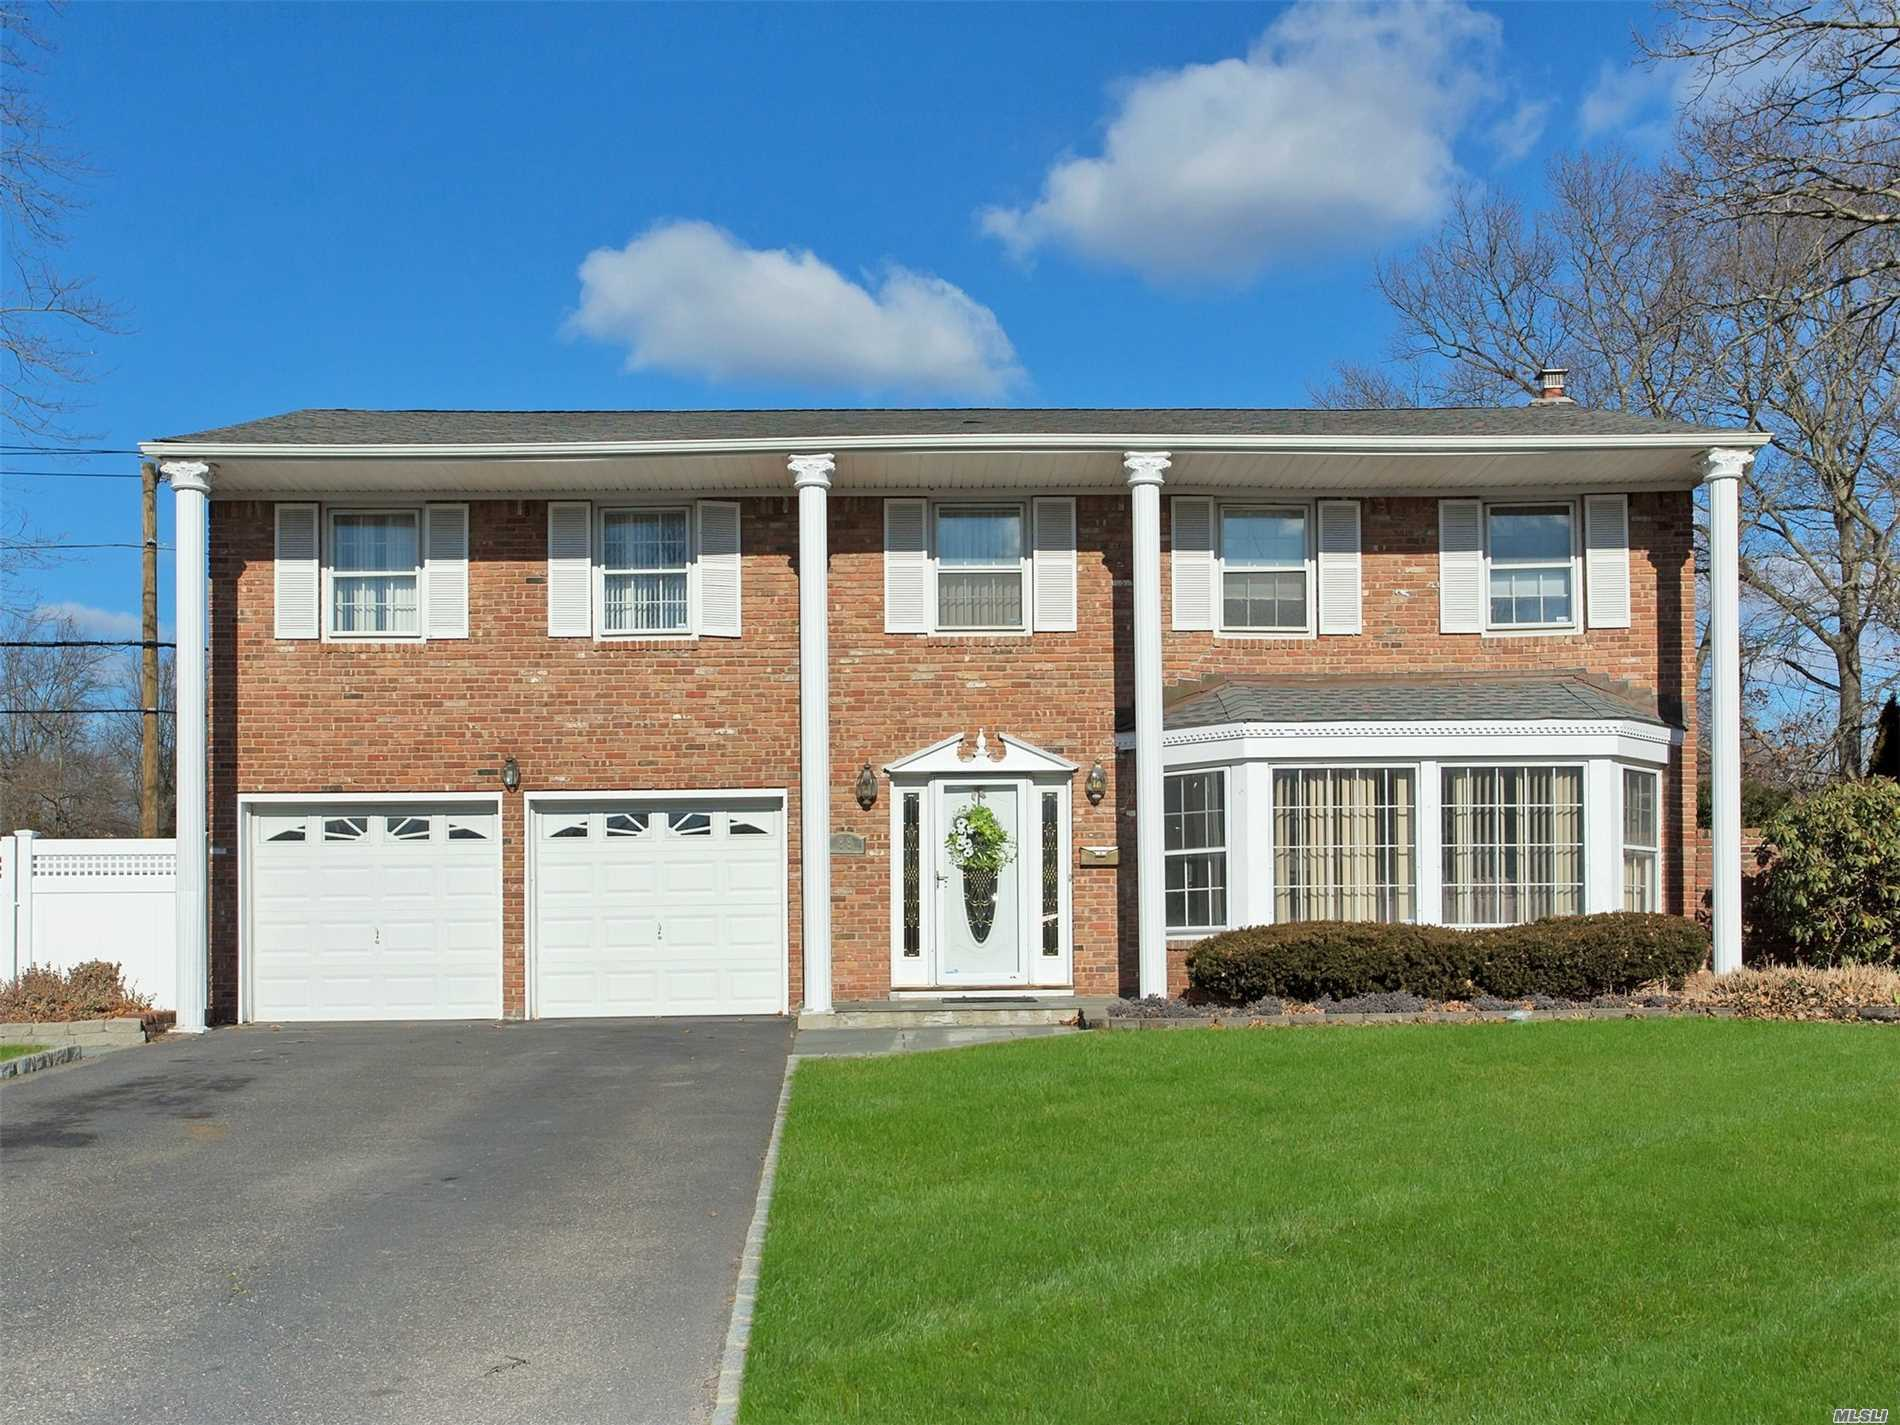 88 Darcy Cir - Islip, New York